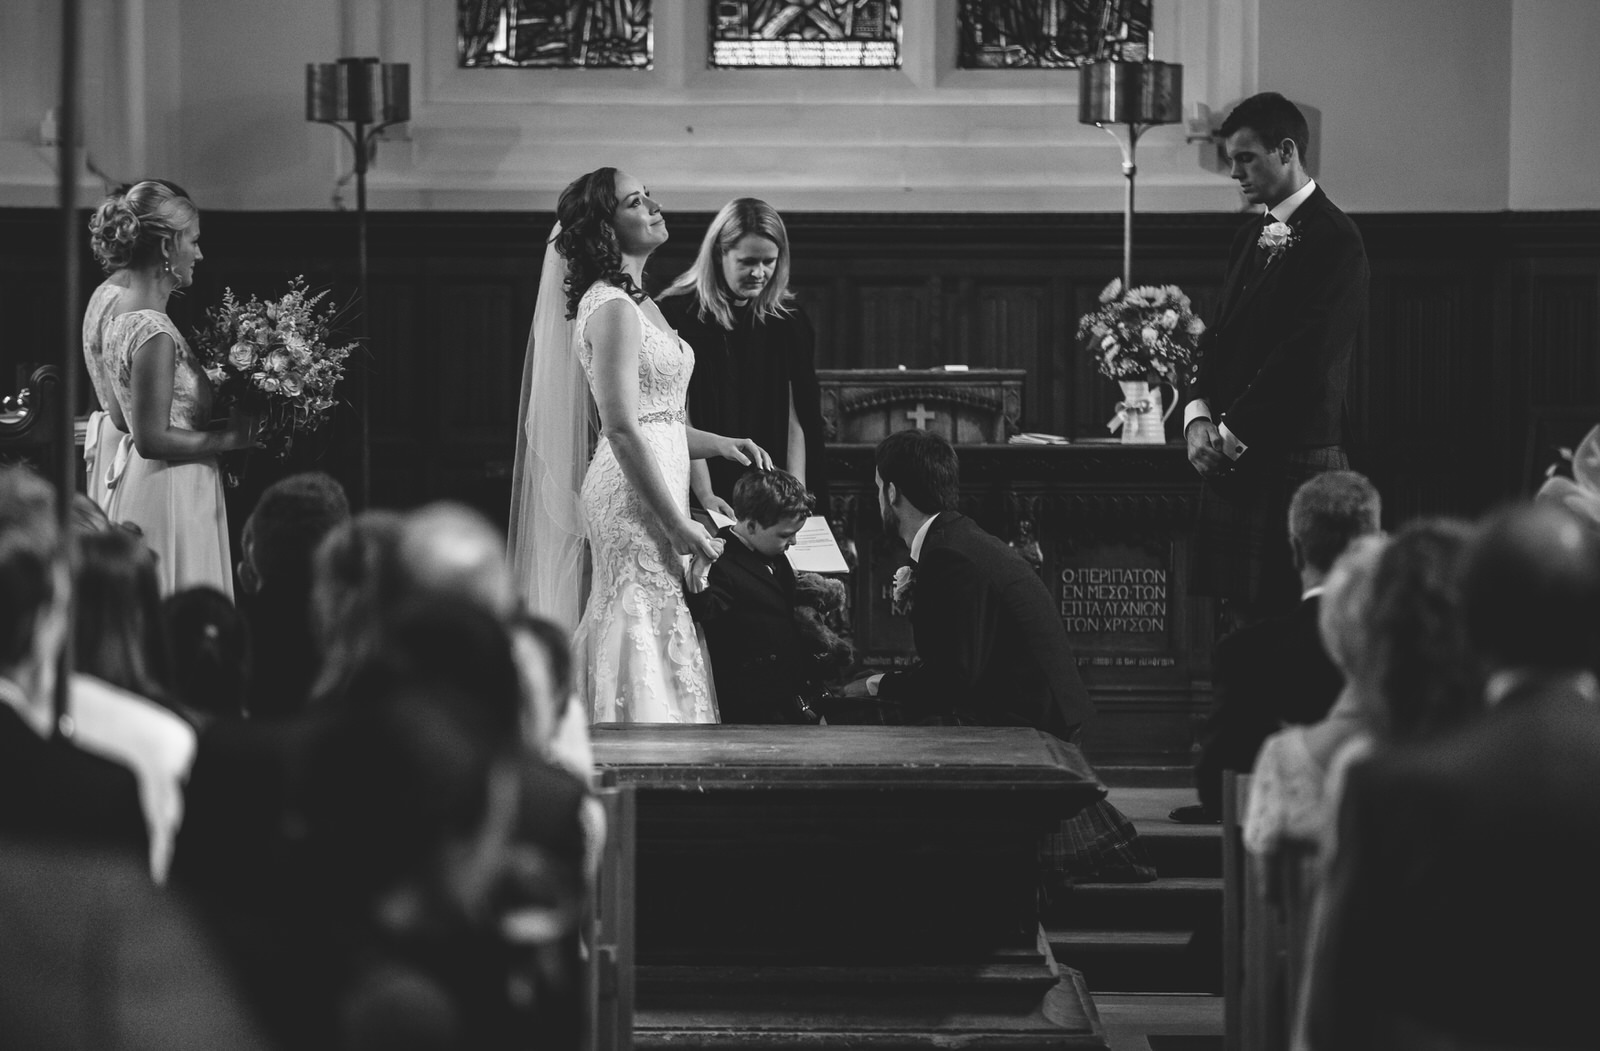 kings college aberdeen, wedding ceremony at kings college aberdeen, wedding photography aberdeen, aberdeen wedding photographers, wedding ceremony